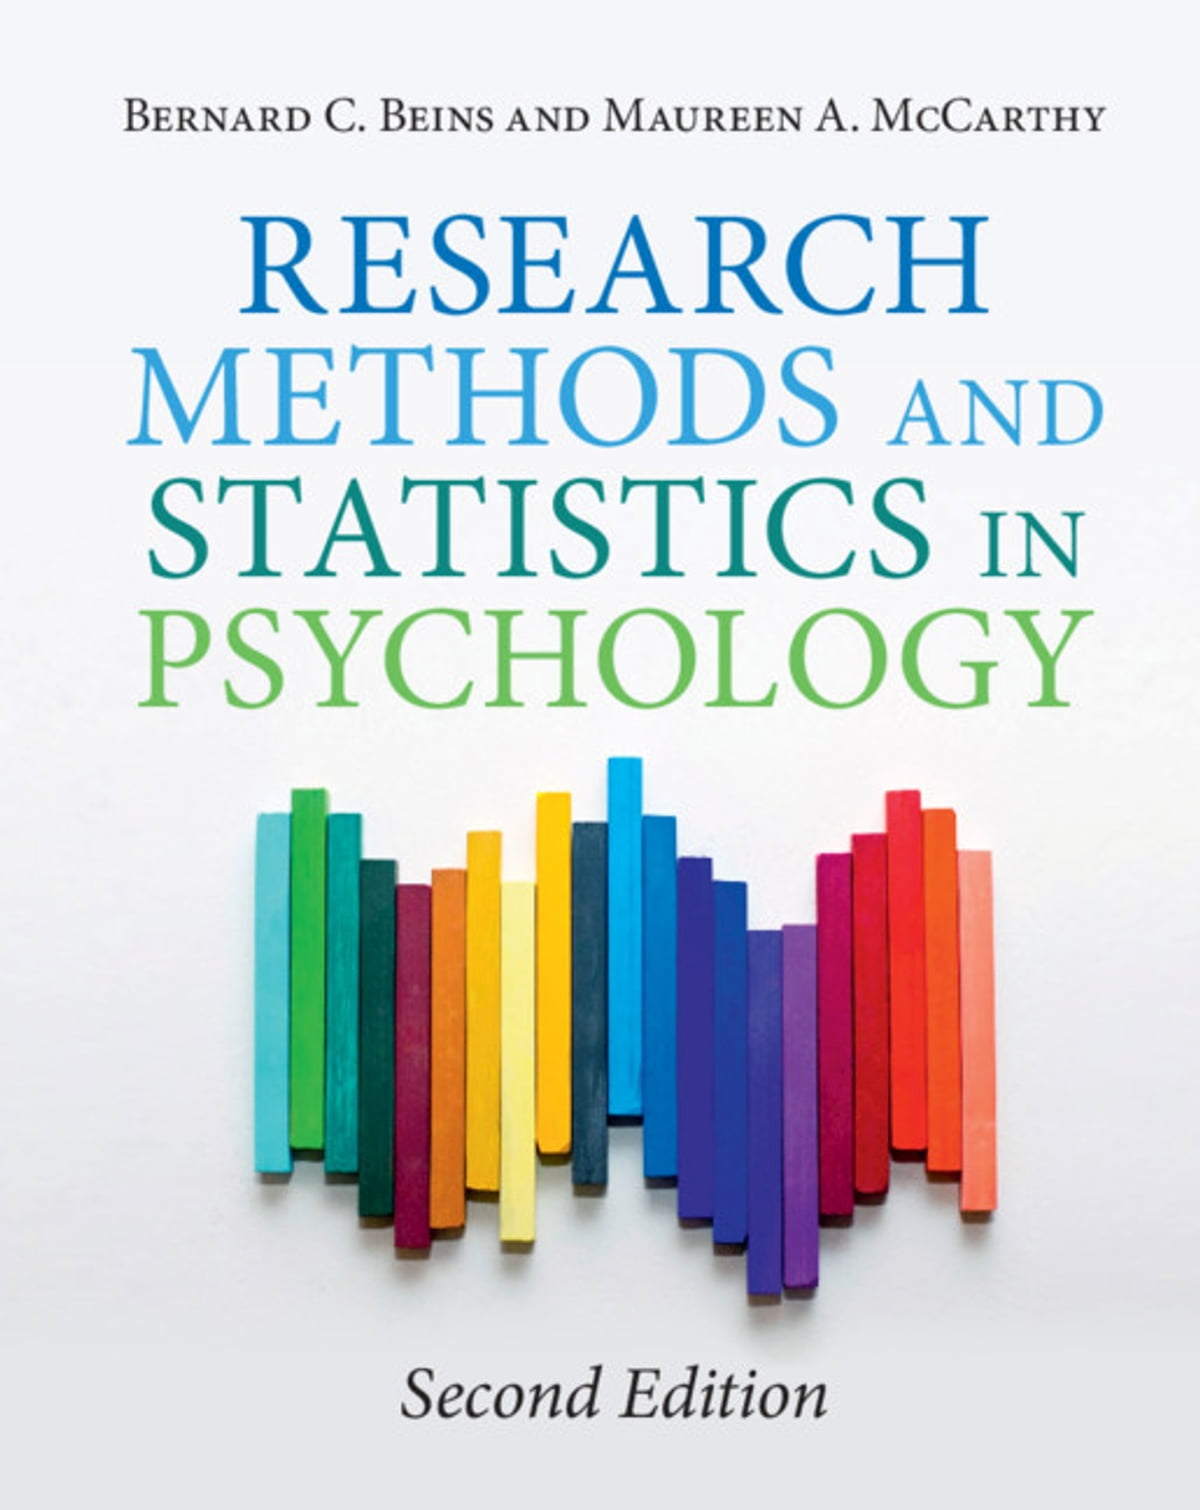 Image result for Research Methods and Statistics in Psychology